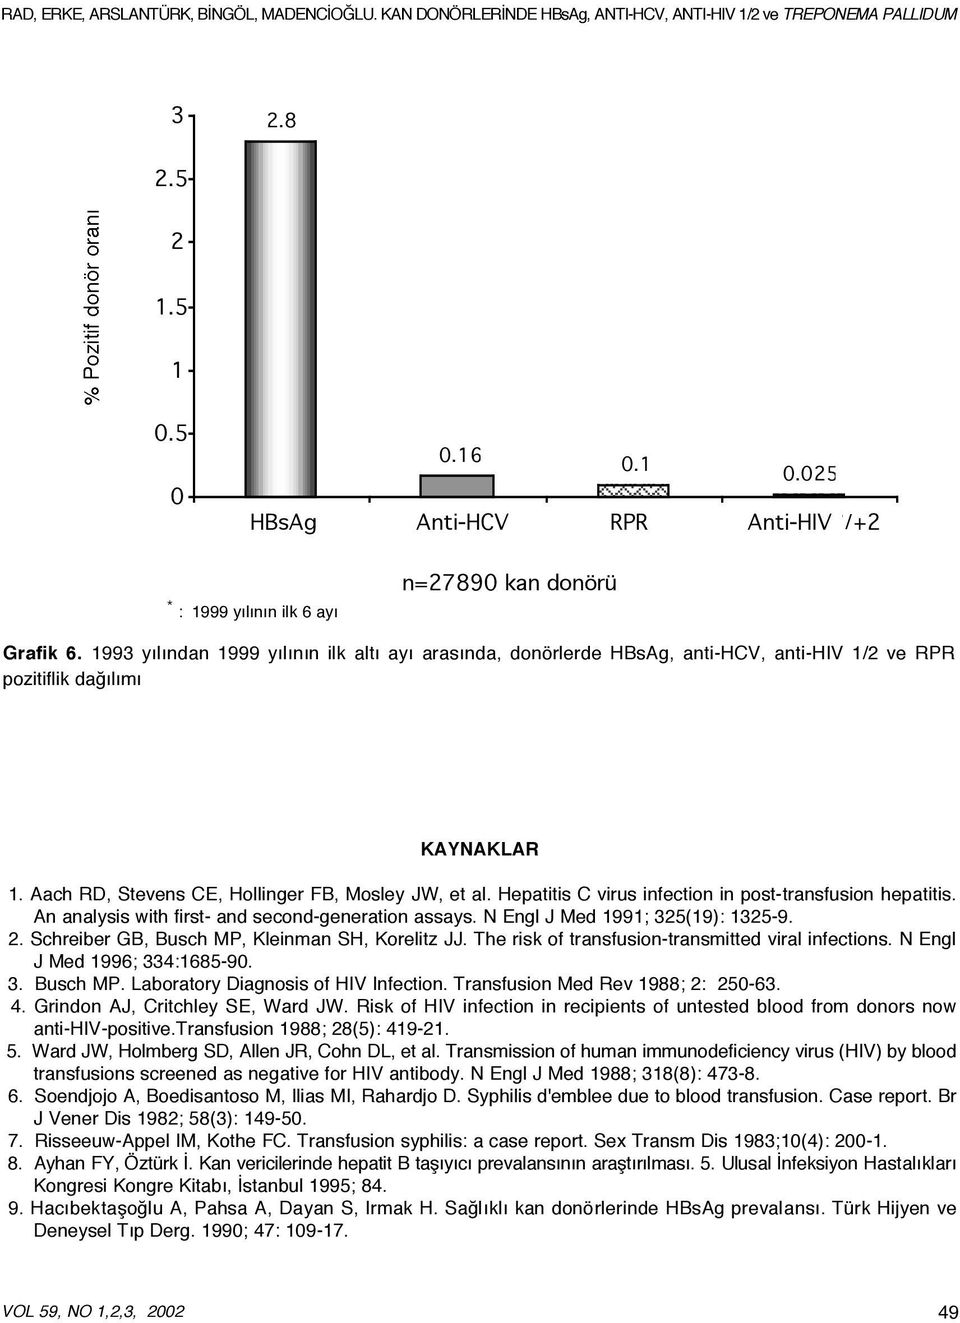 Hepatitis C virus infection in post-transfusion hepatitis. An analysis with first- and second-generation assays. N Engl J Med 1991; 325(19): 1325-9. 2.